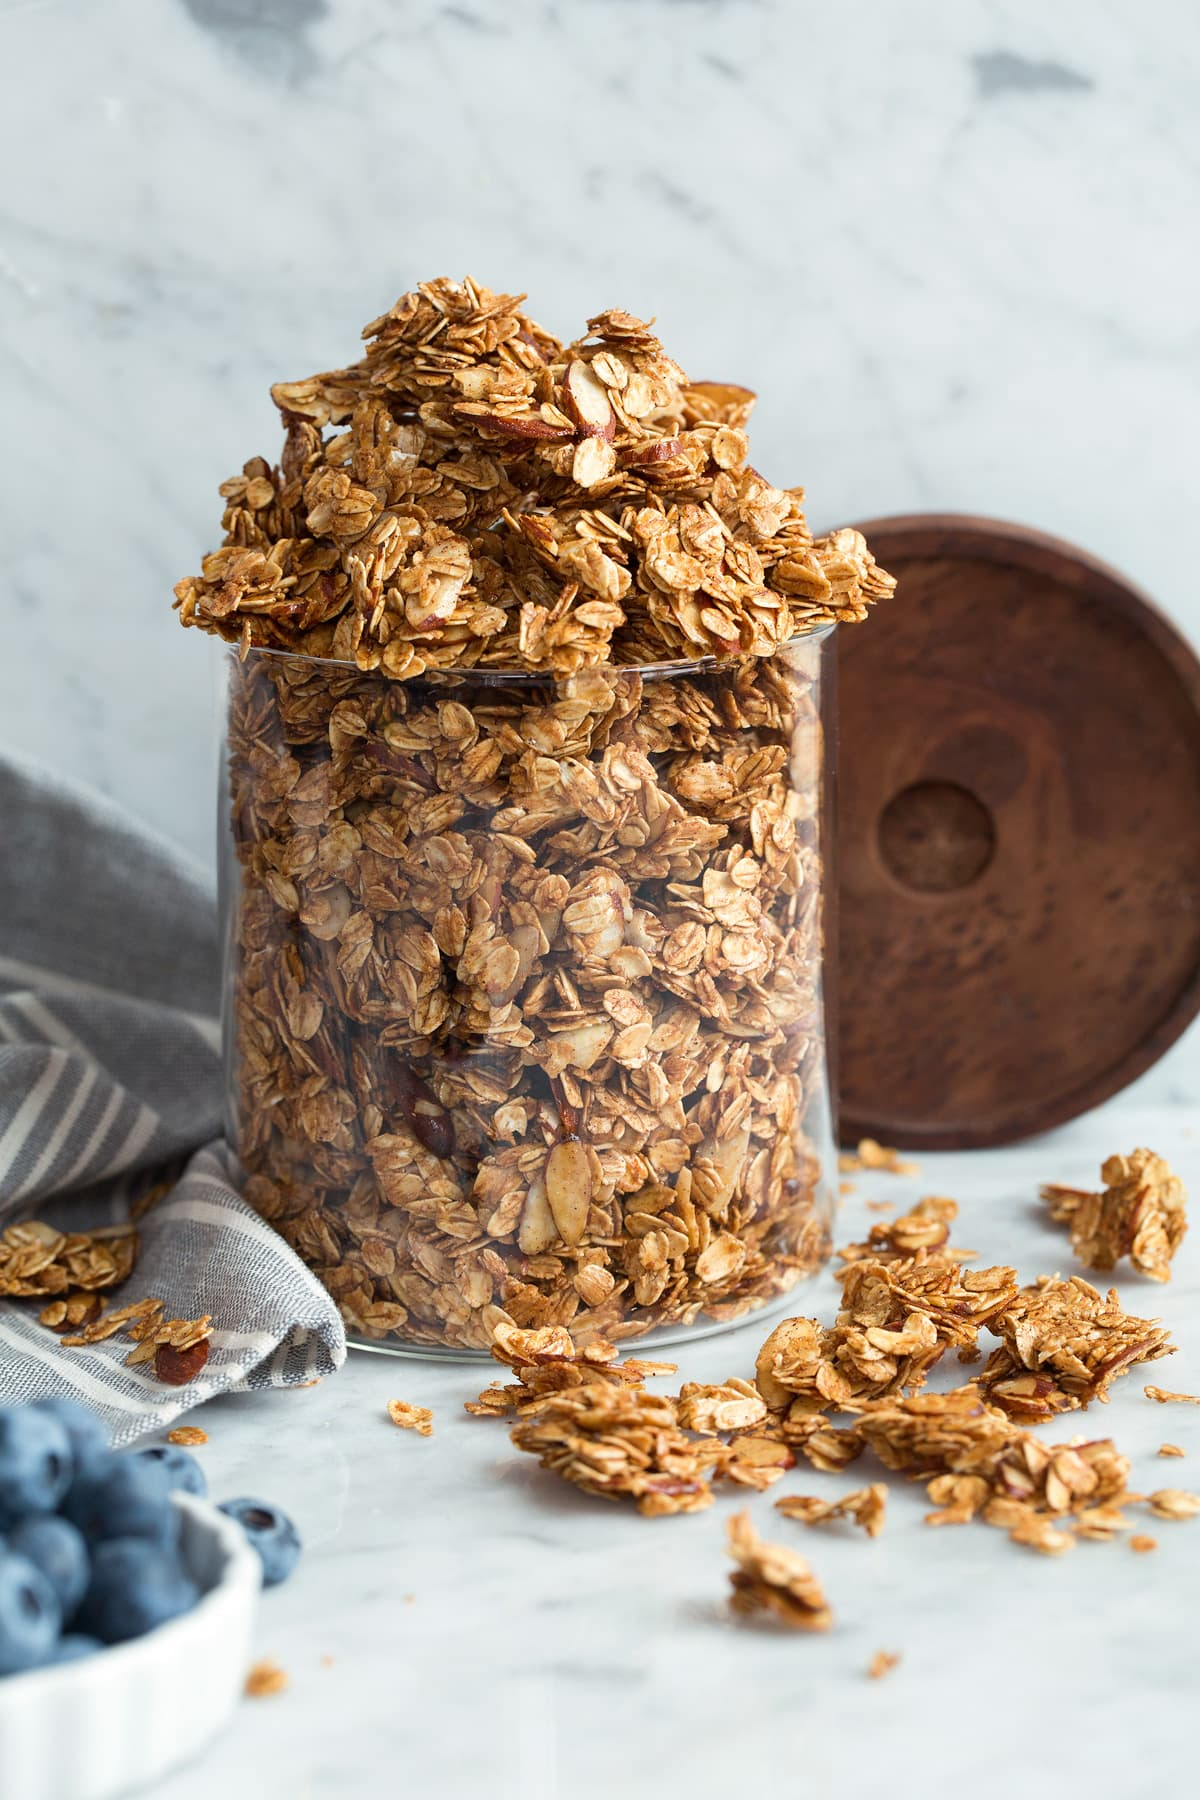 Homemade granola in a glass storage jar.